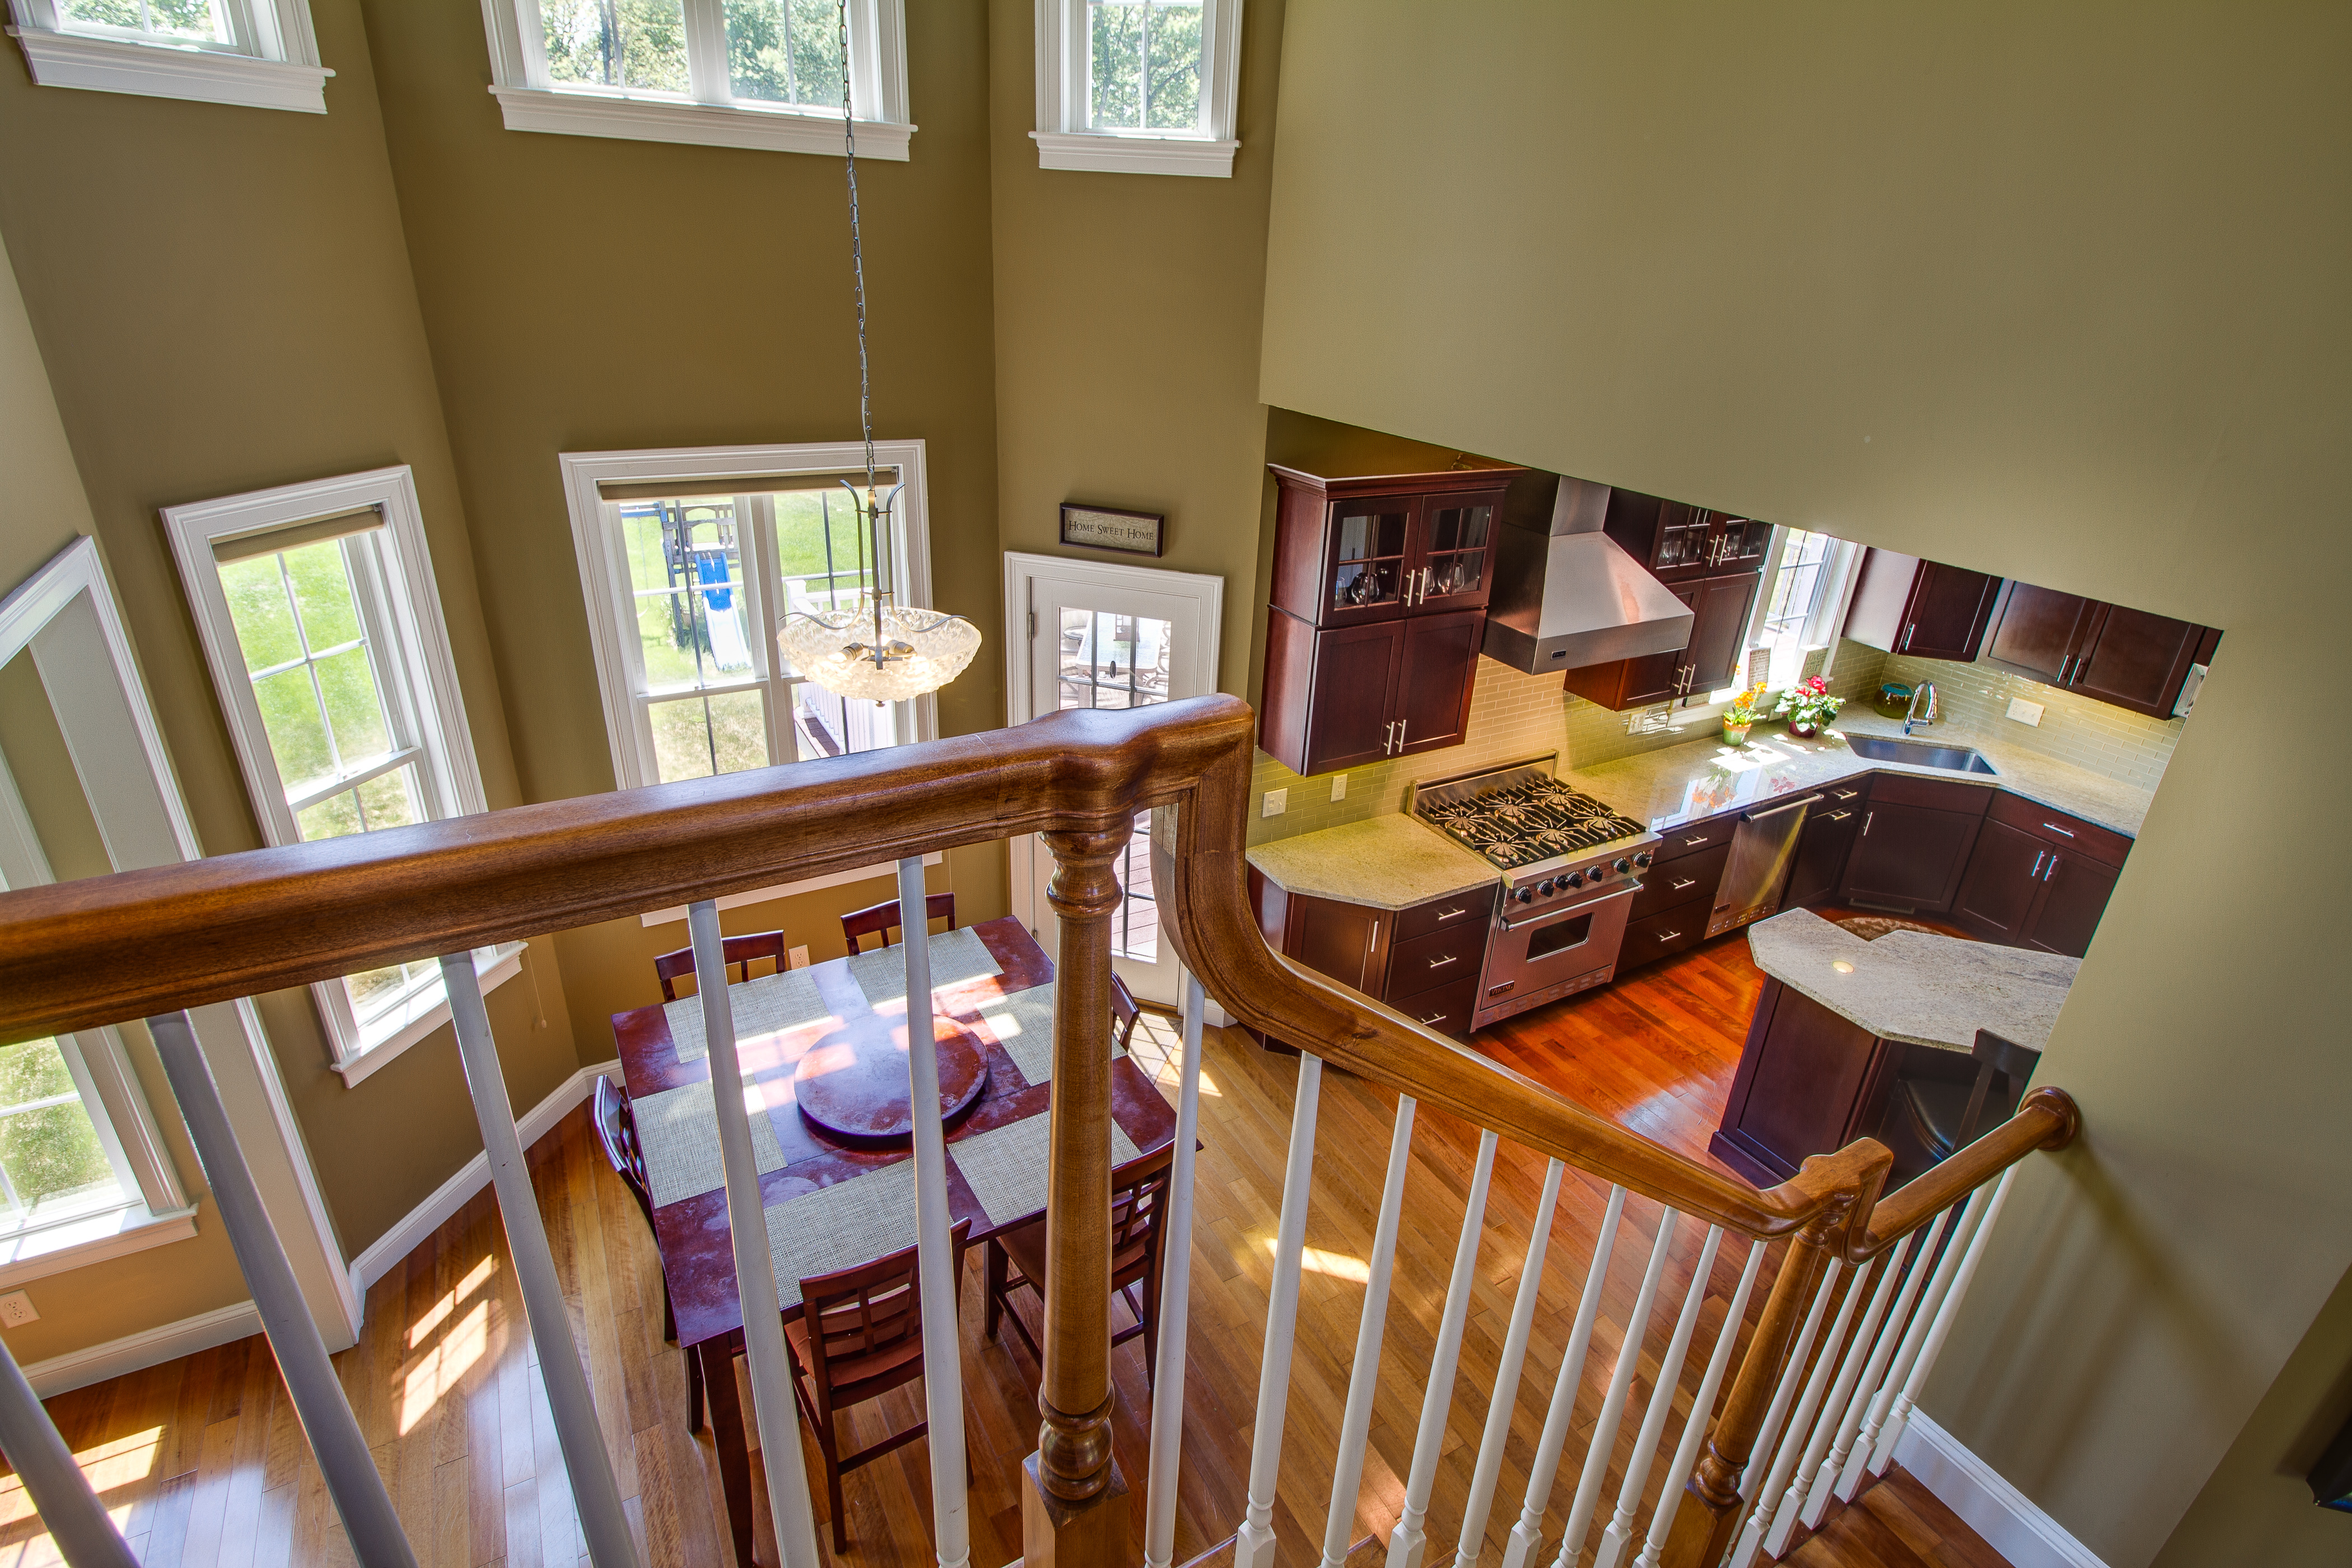 19 Sandy Ridge Rd, Sterling, MA - Karen Packard-56